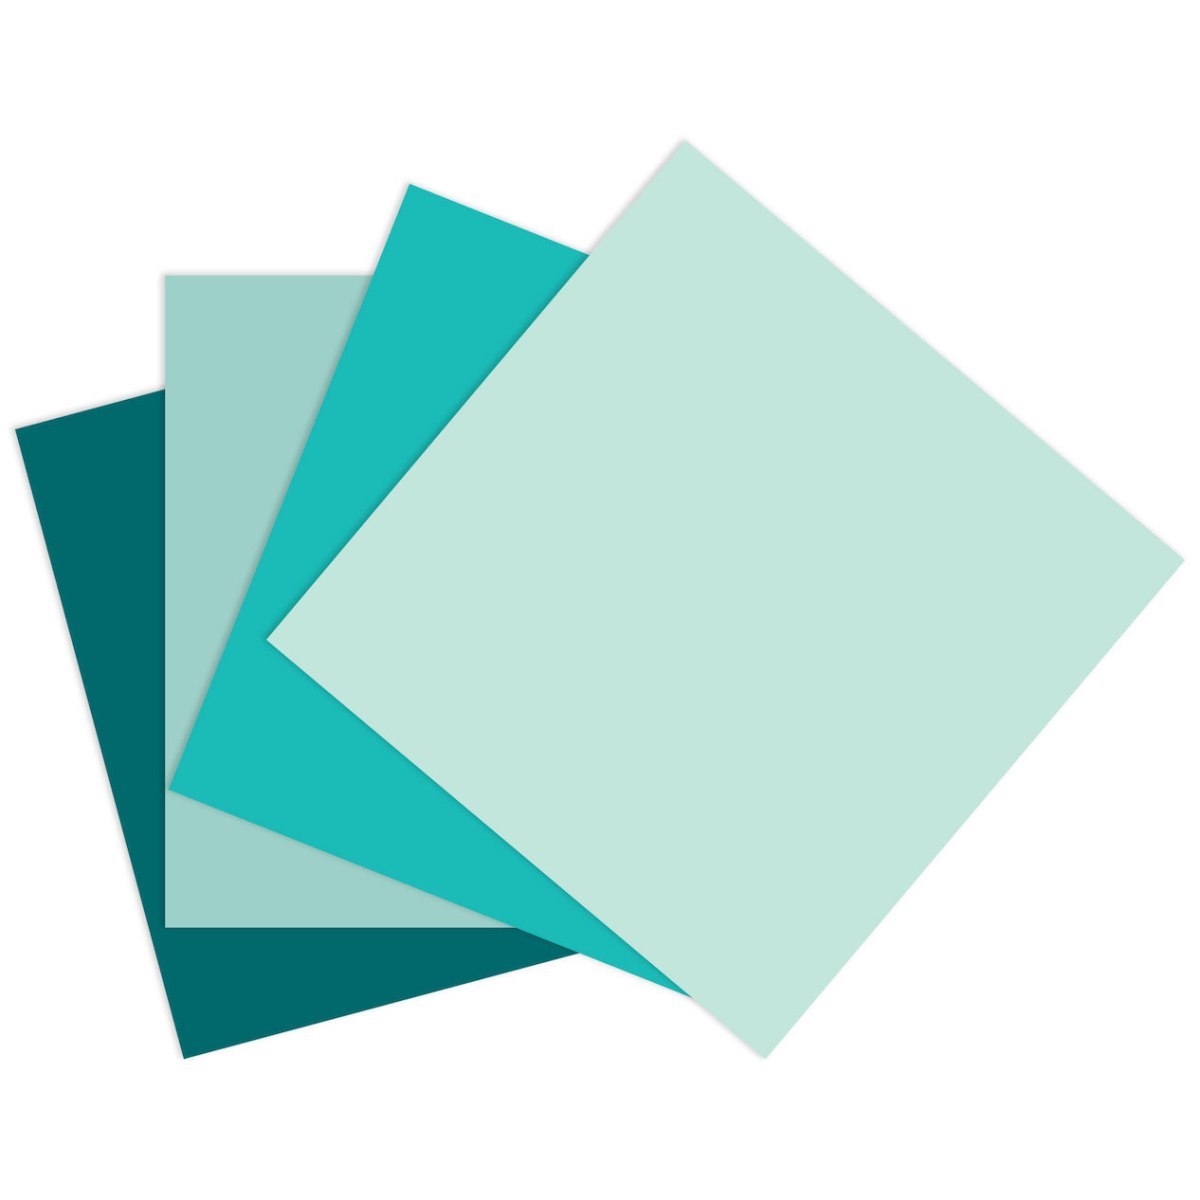 Cardstock Carnival #ctmh #closetomyheart #cardstock #exclusivecolorpalette #exclusivecolourpalatte #ctmhcolors #cmthcolours #greenblue #peacock #glacier #lagoon #mint